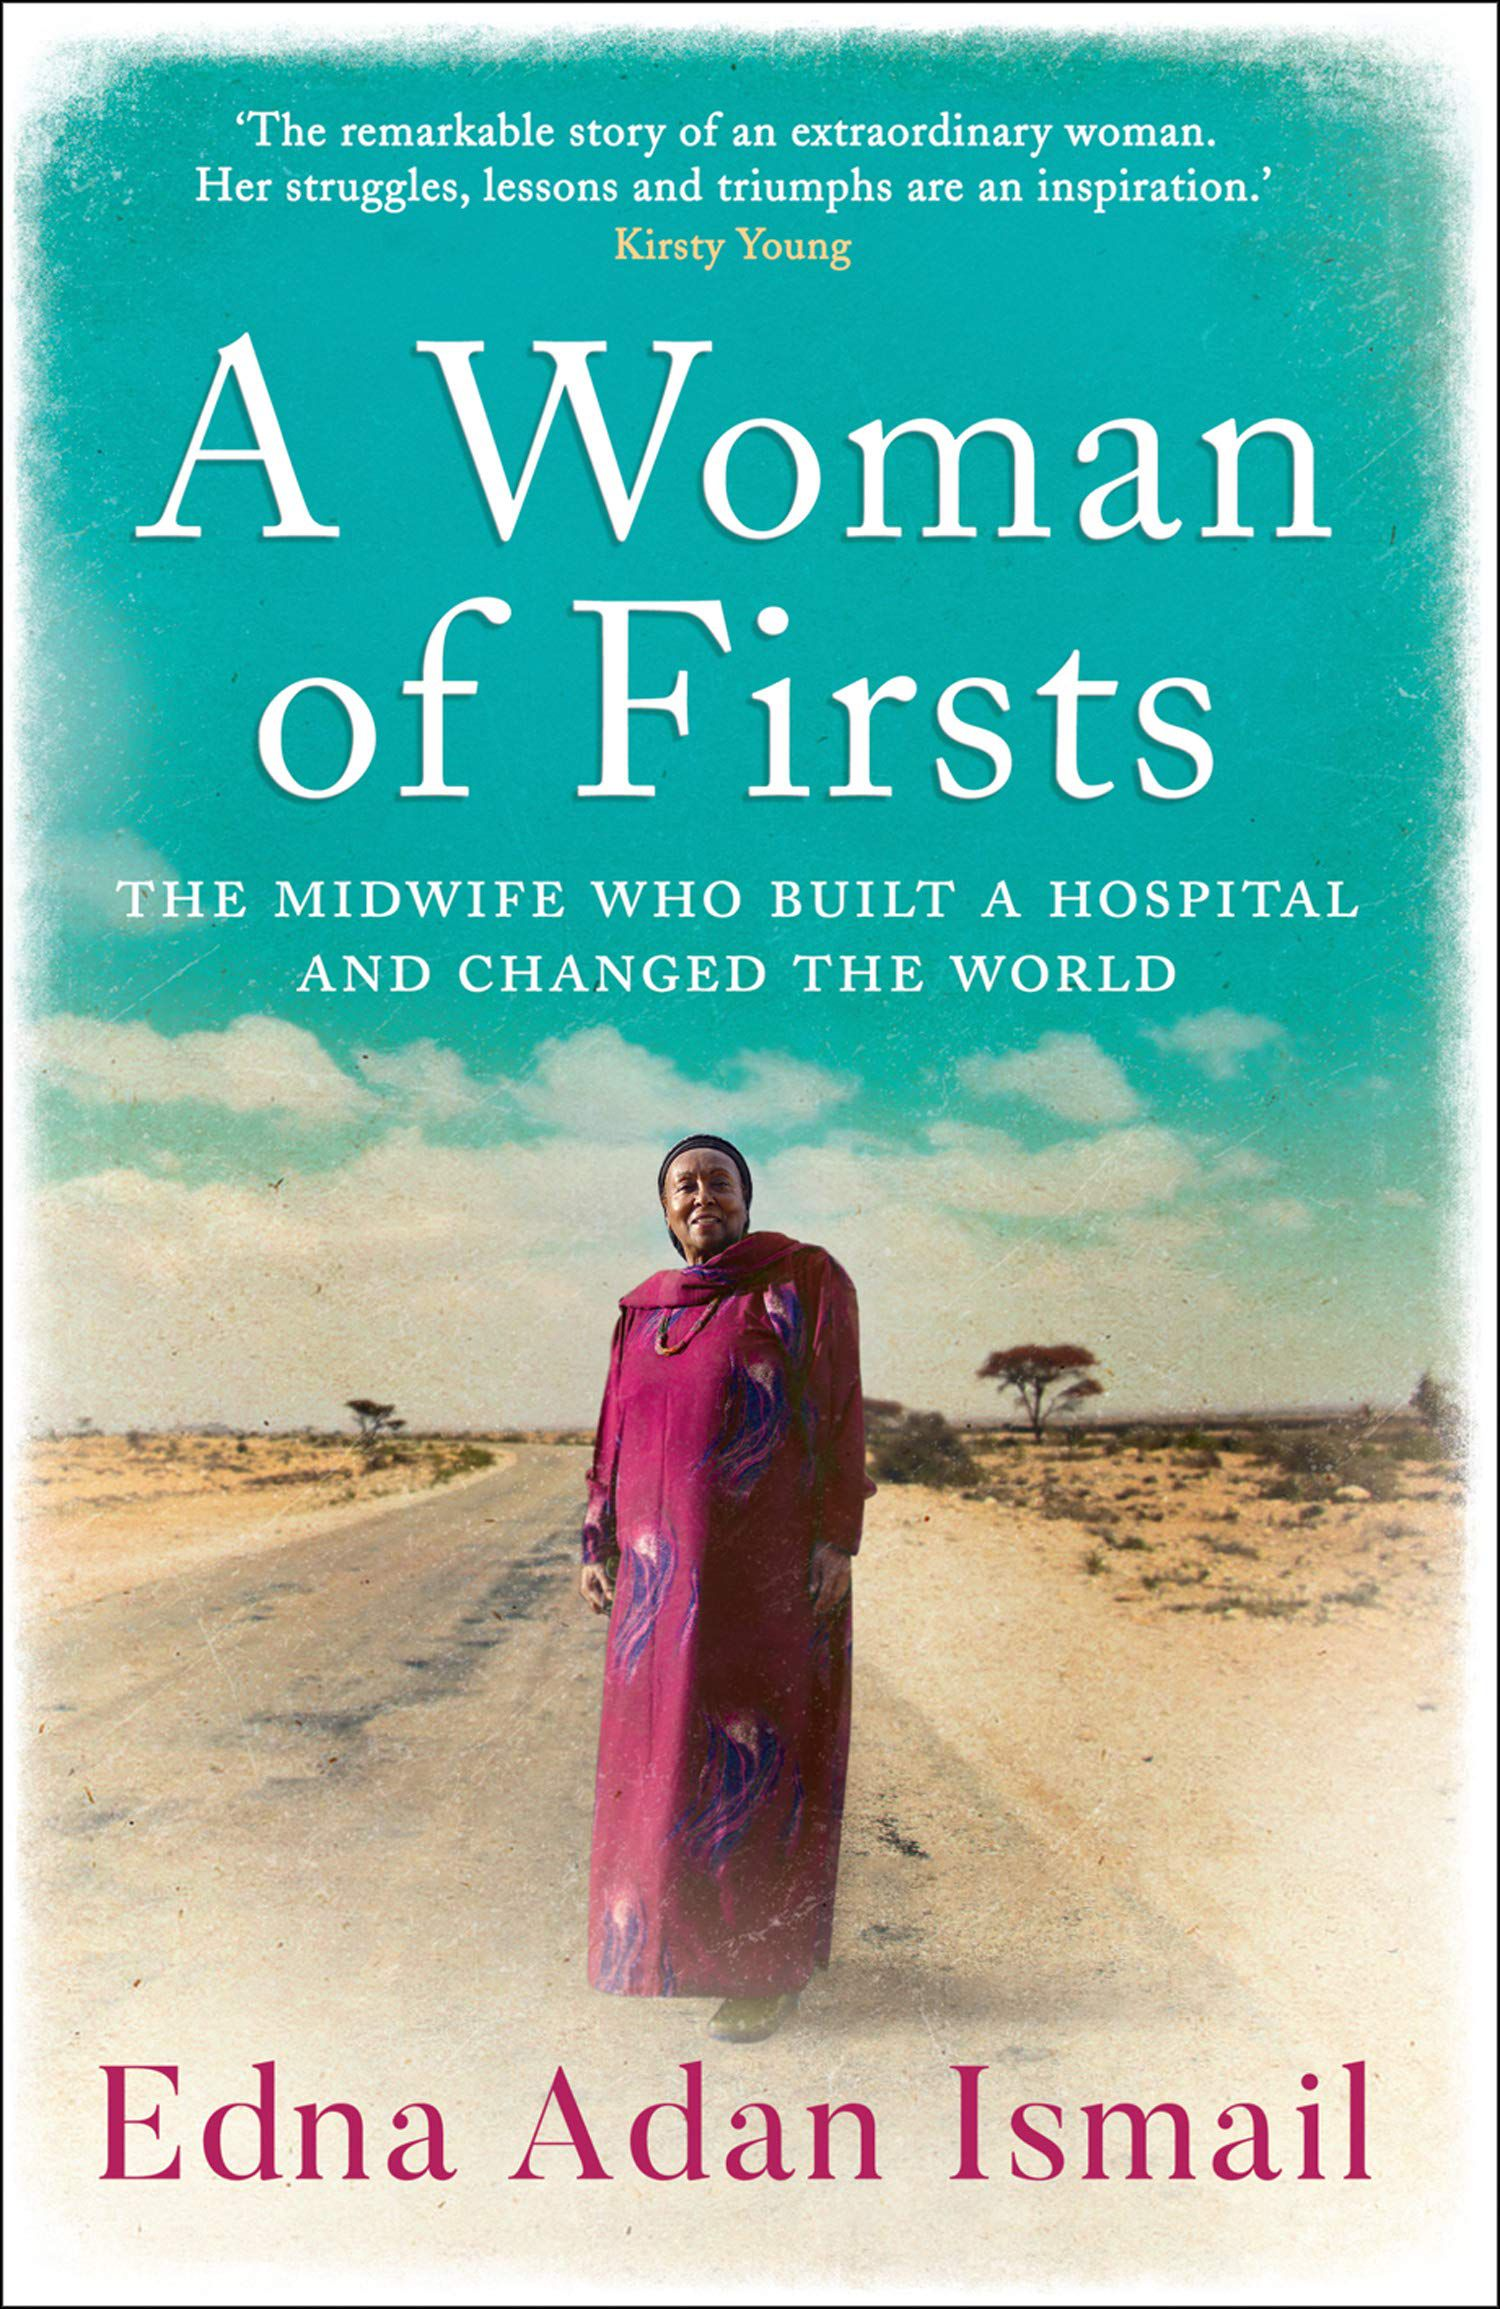 Cover of A Woman of Firsts by Somaliland writer Edna Adan Ismail